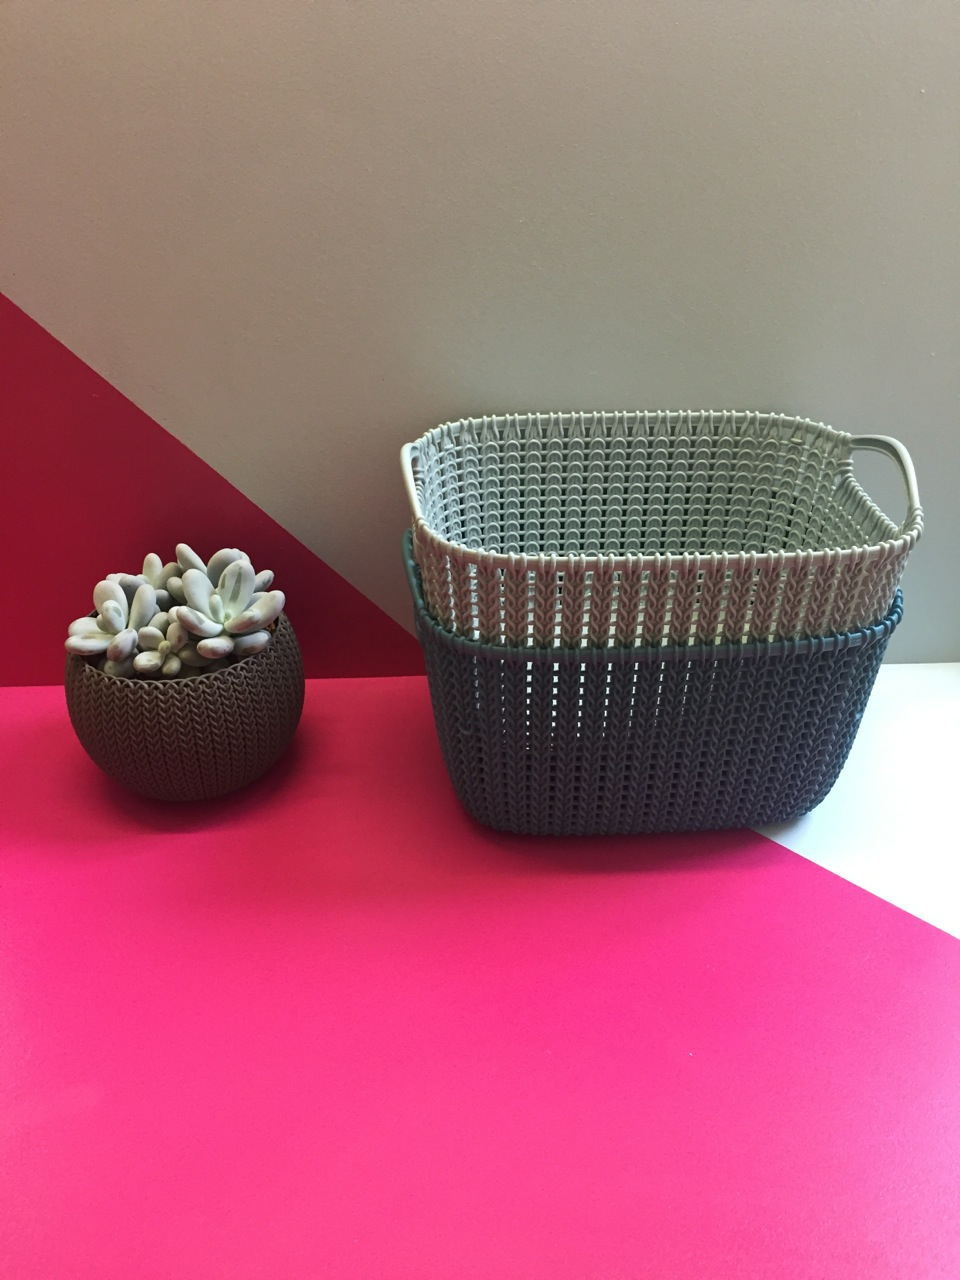 woven plant baskets